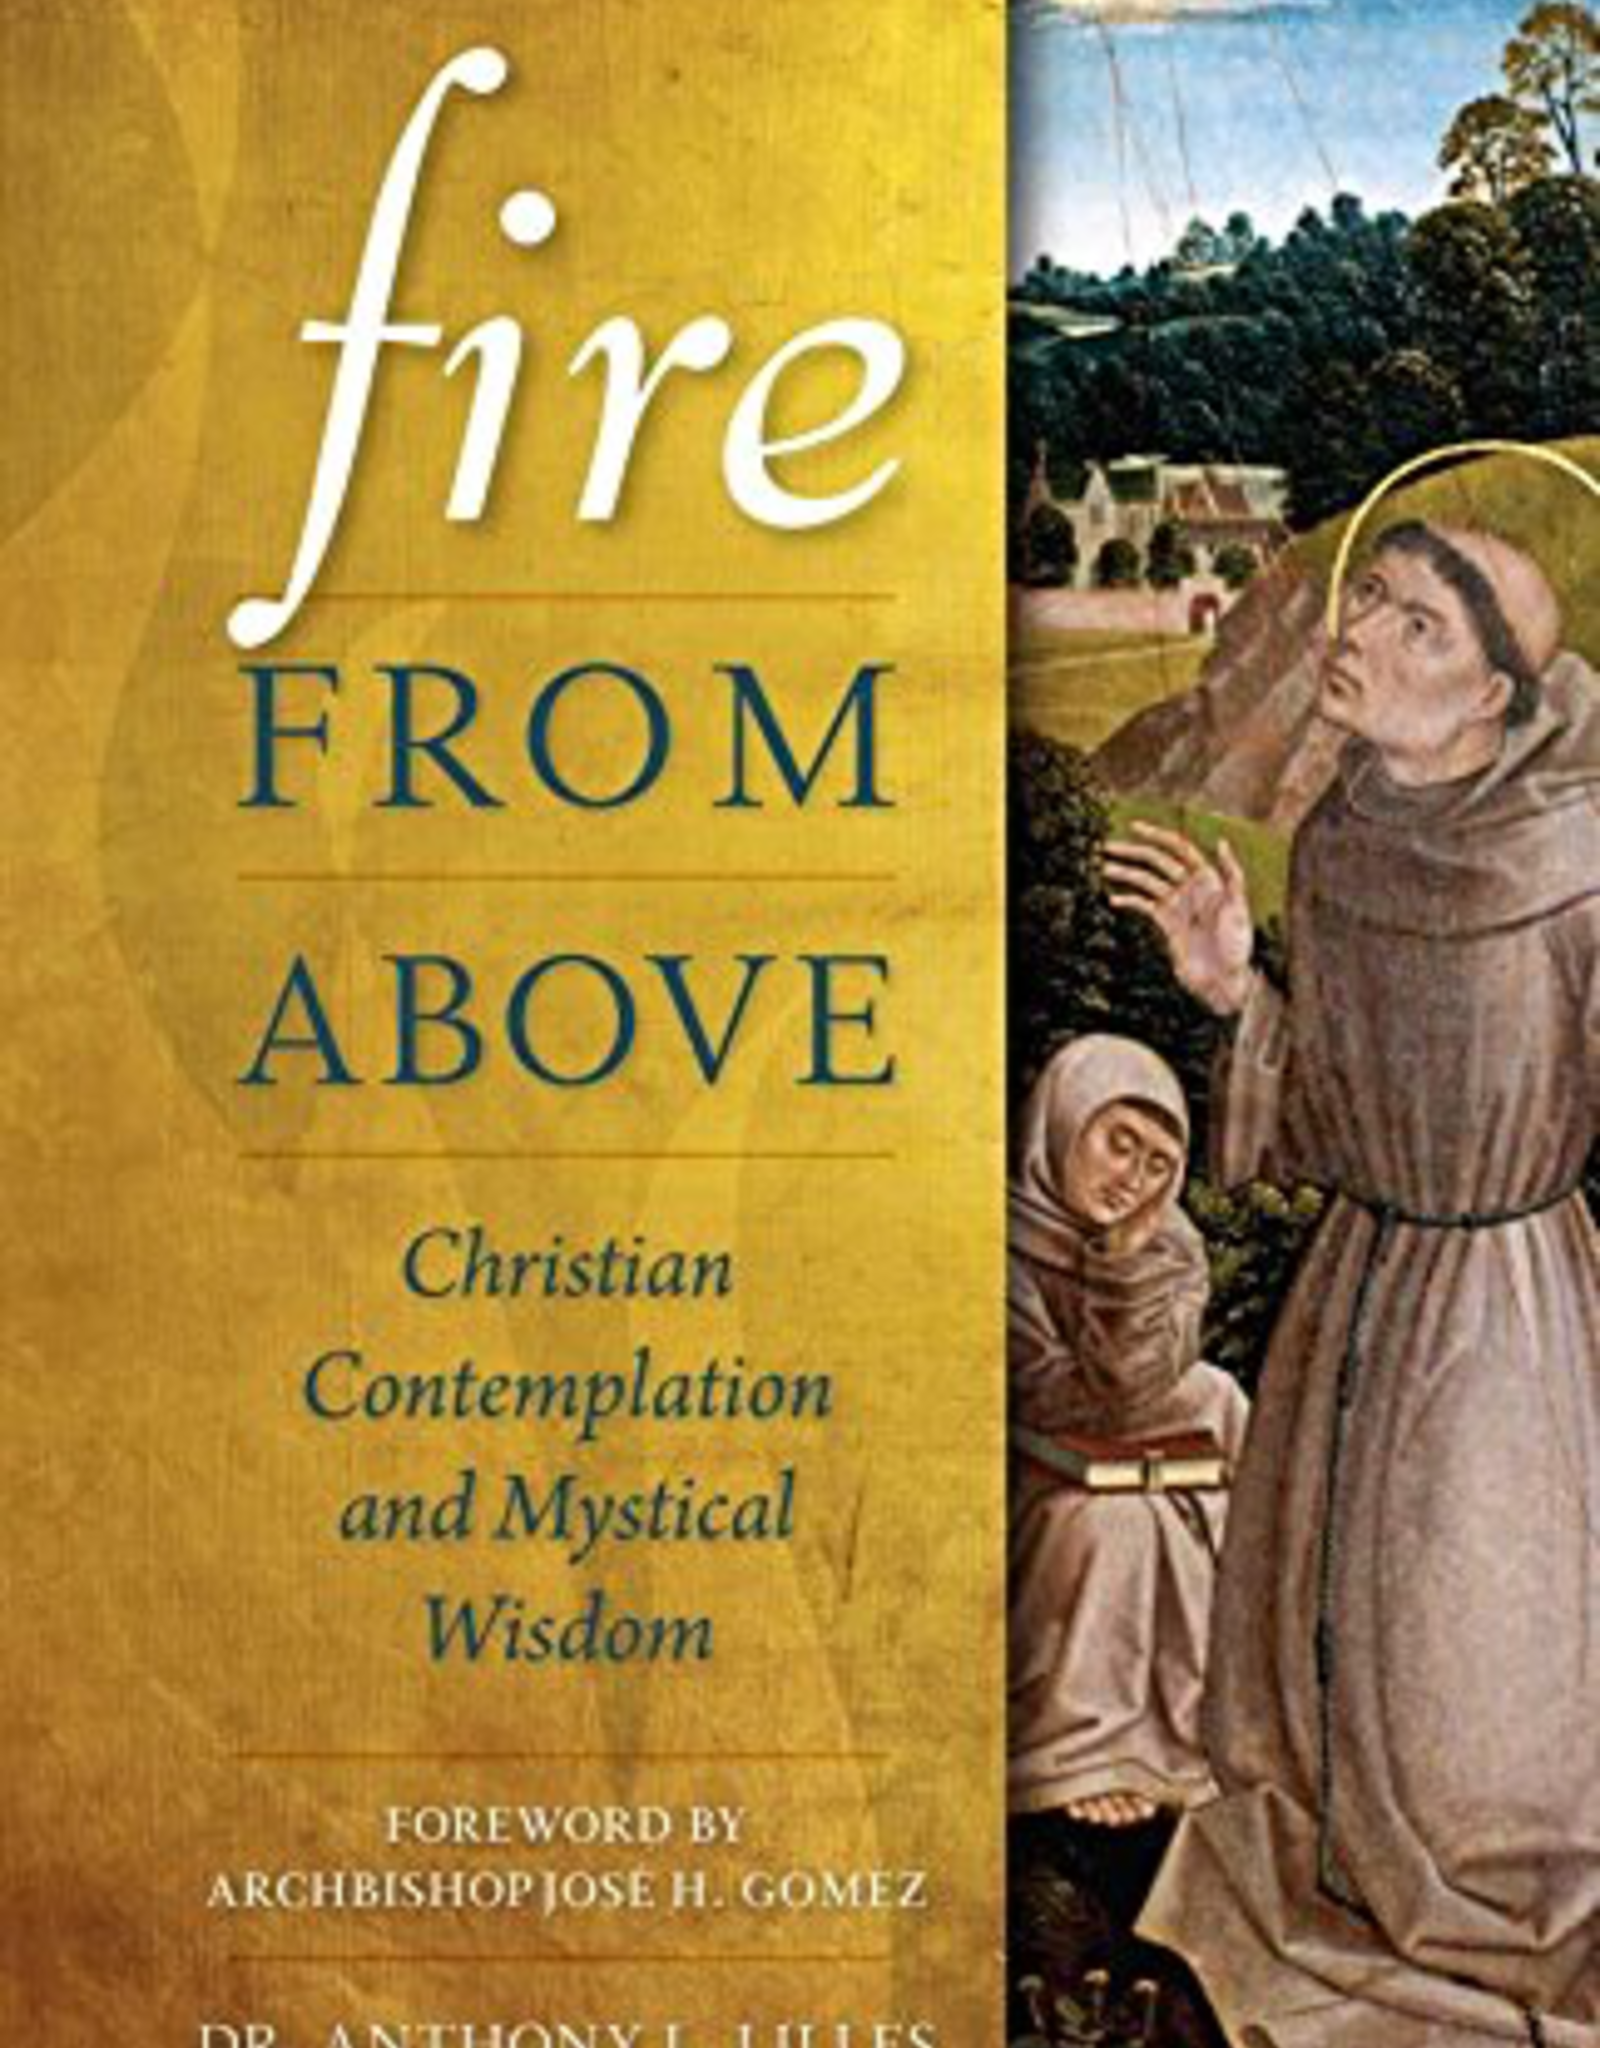 Sophia Institute Fire From Above: Christian Contemplation and Mystical Wisdom by Dr. Anthony L. Lililes